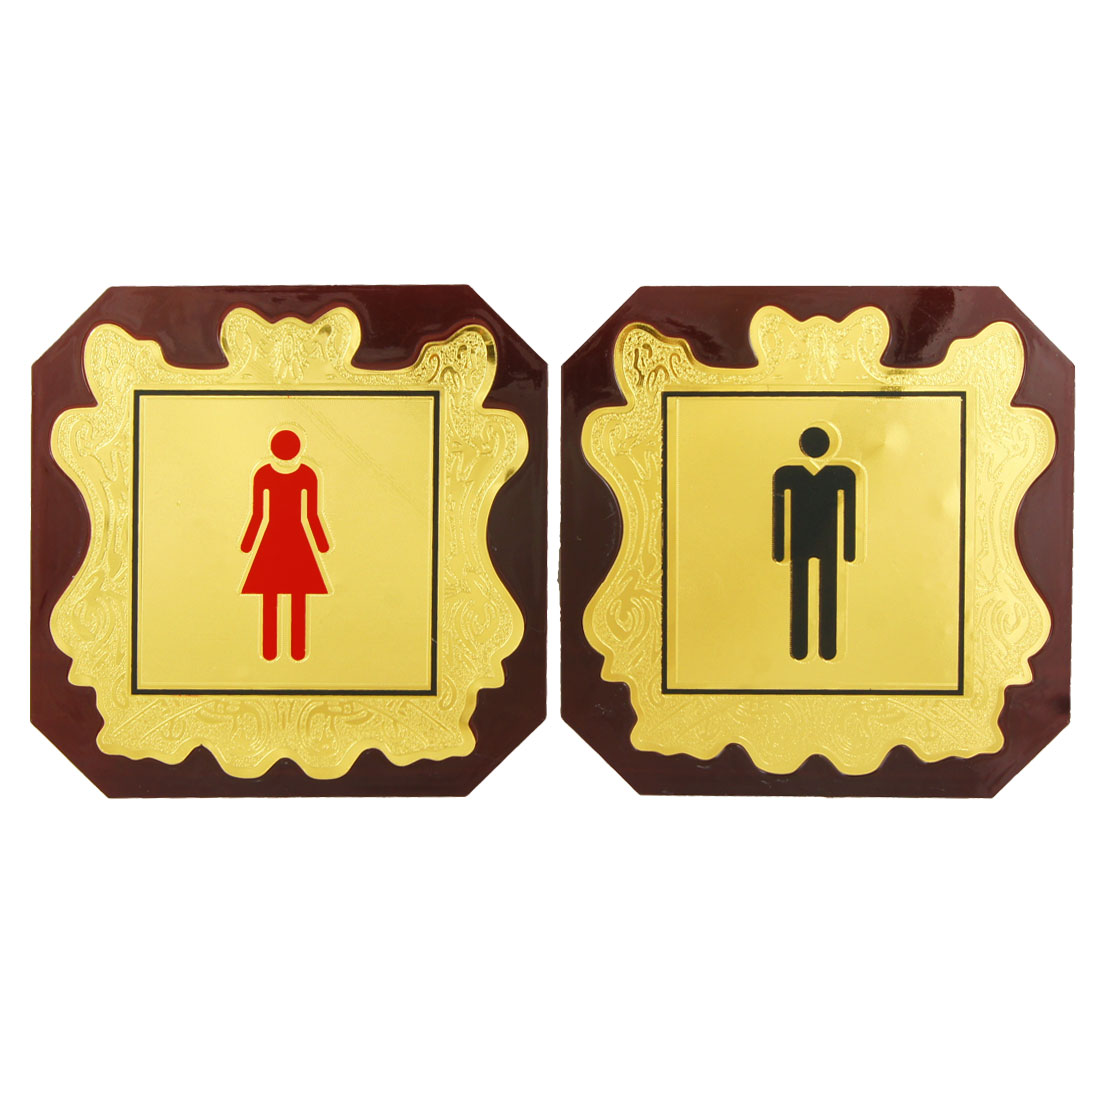 2 in 1 Man Woman Plastic Washroom Toilet Notice Sign Instruction Board